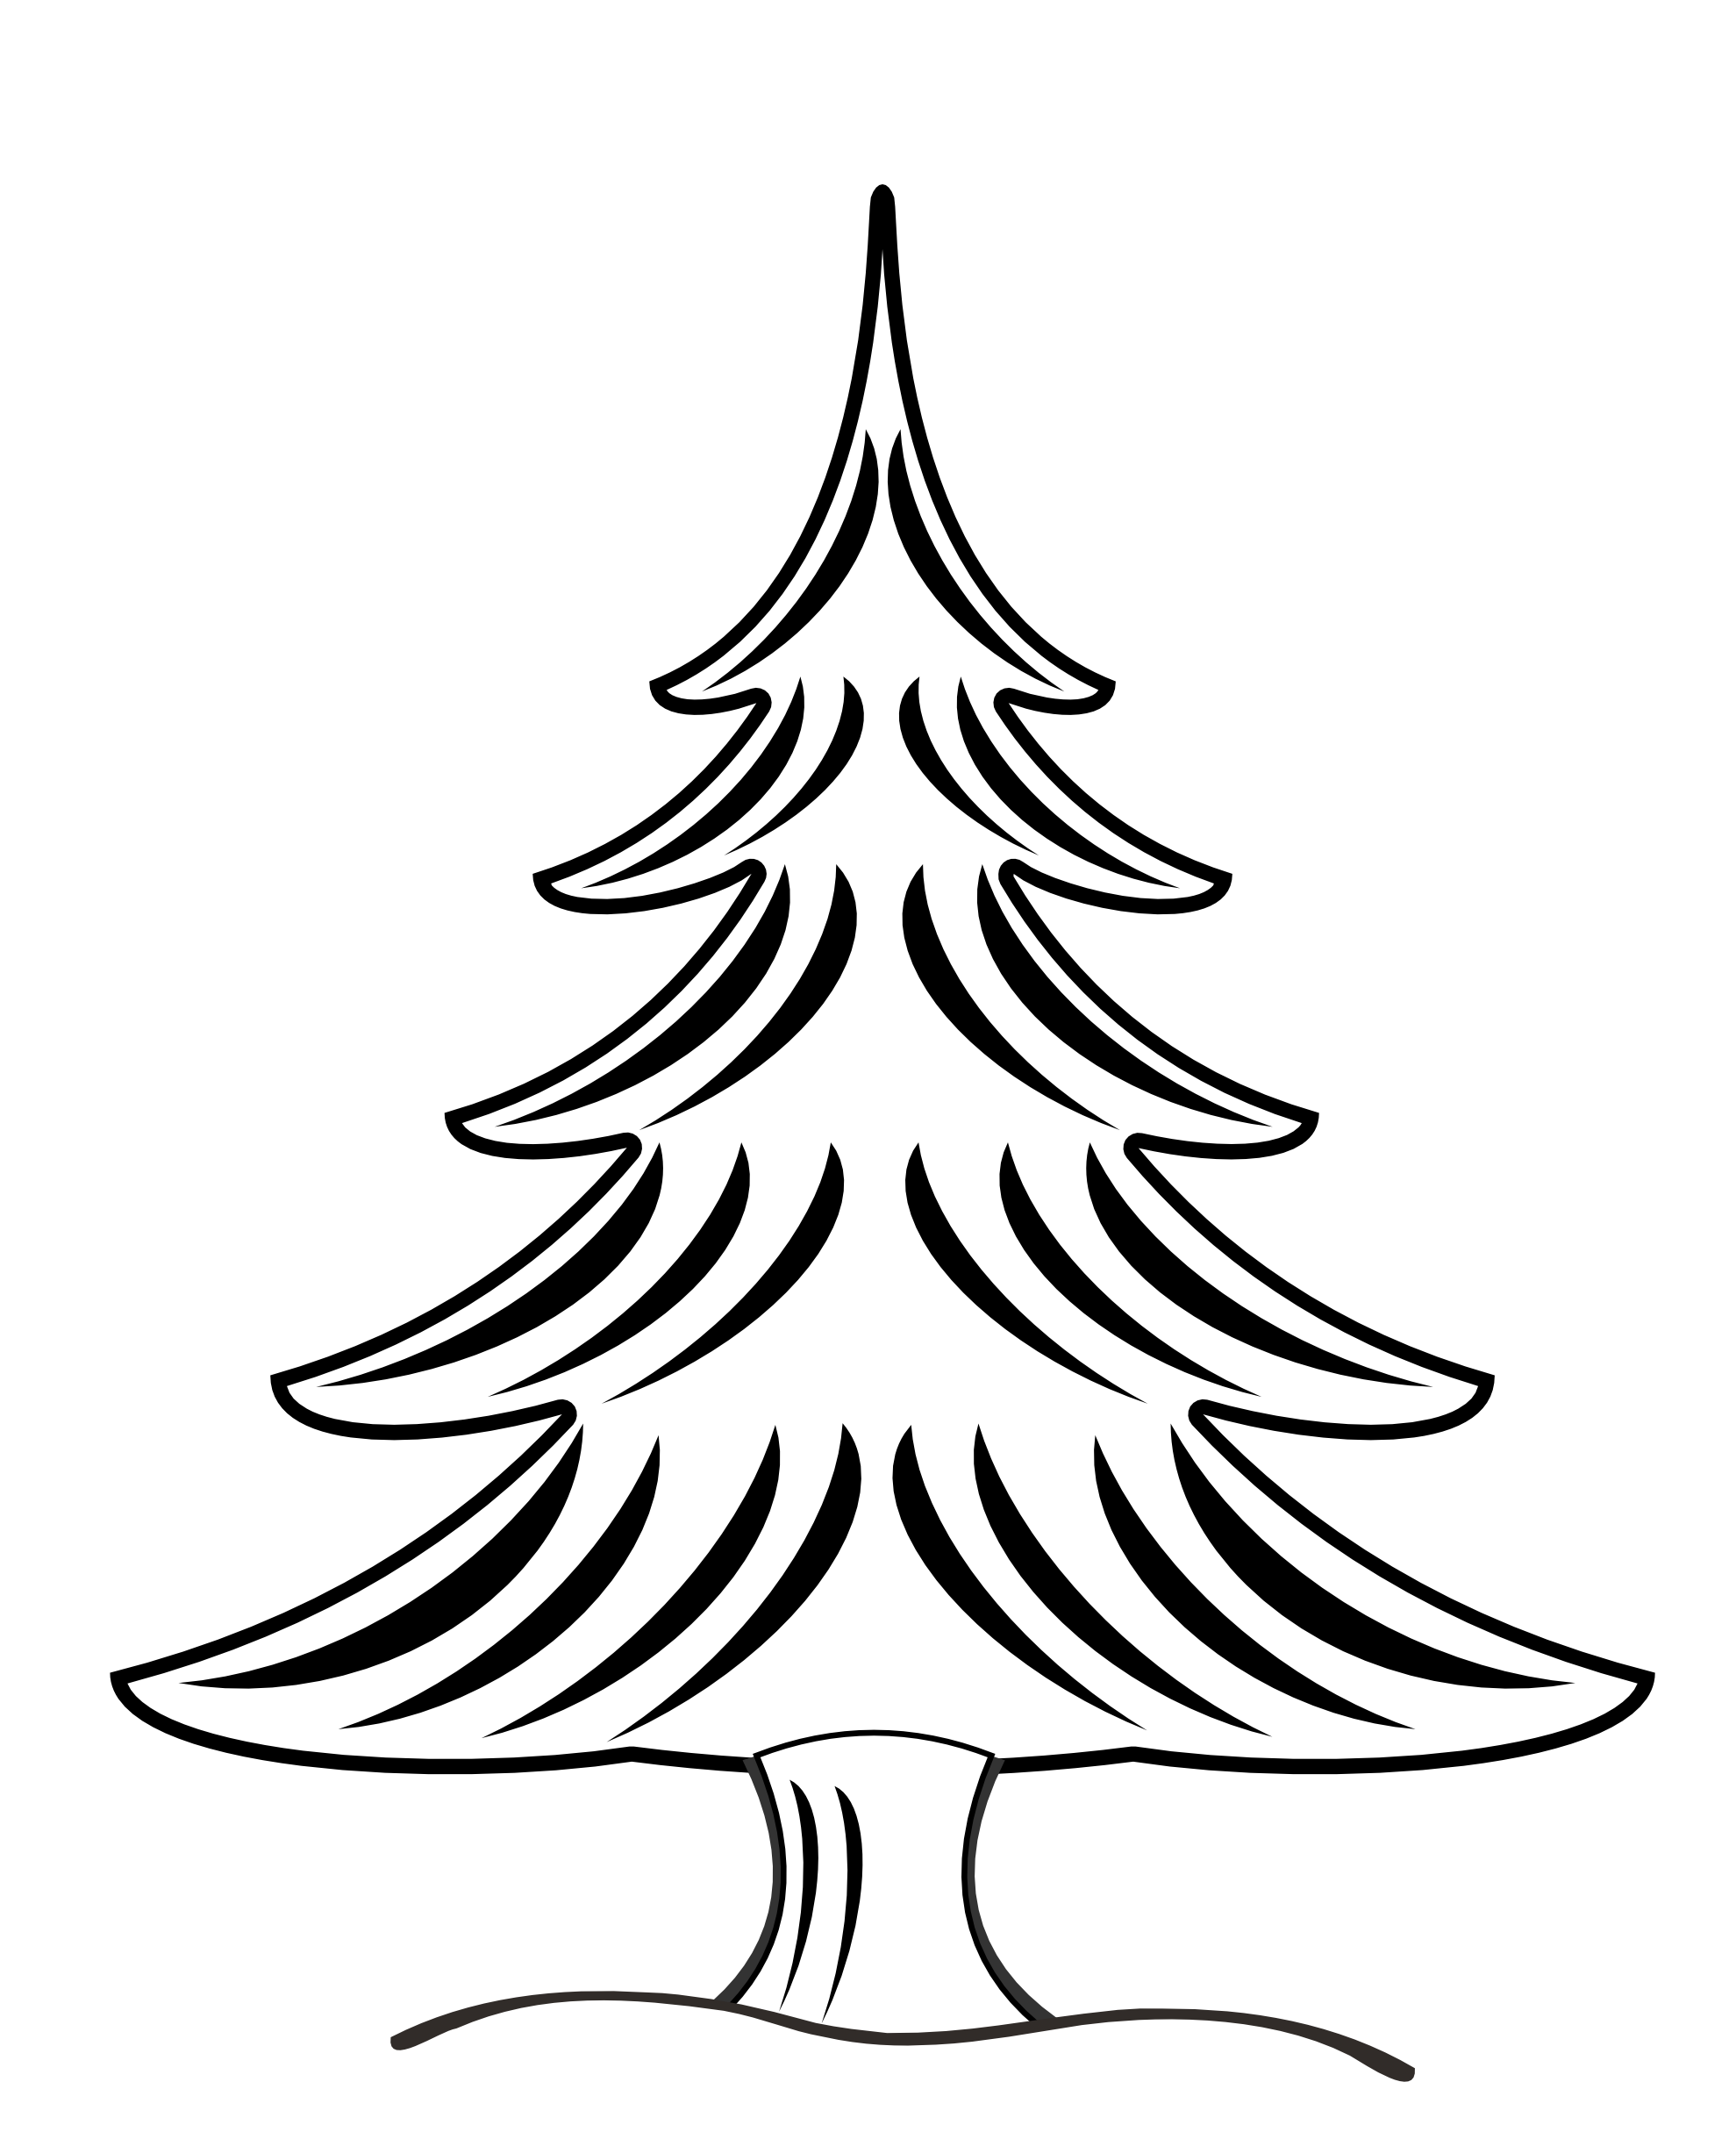 1979x2430 Pine Tree Clip Art Black And White Clipart Image 2